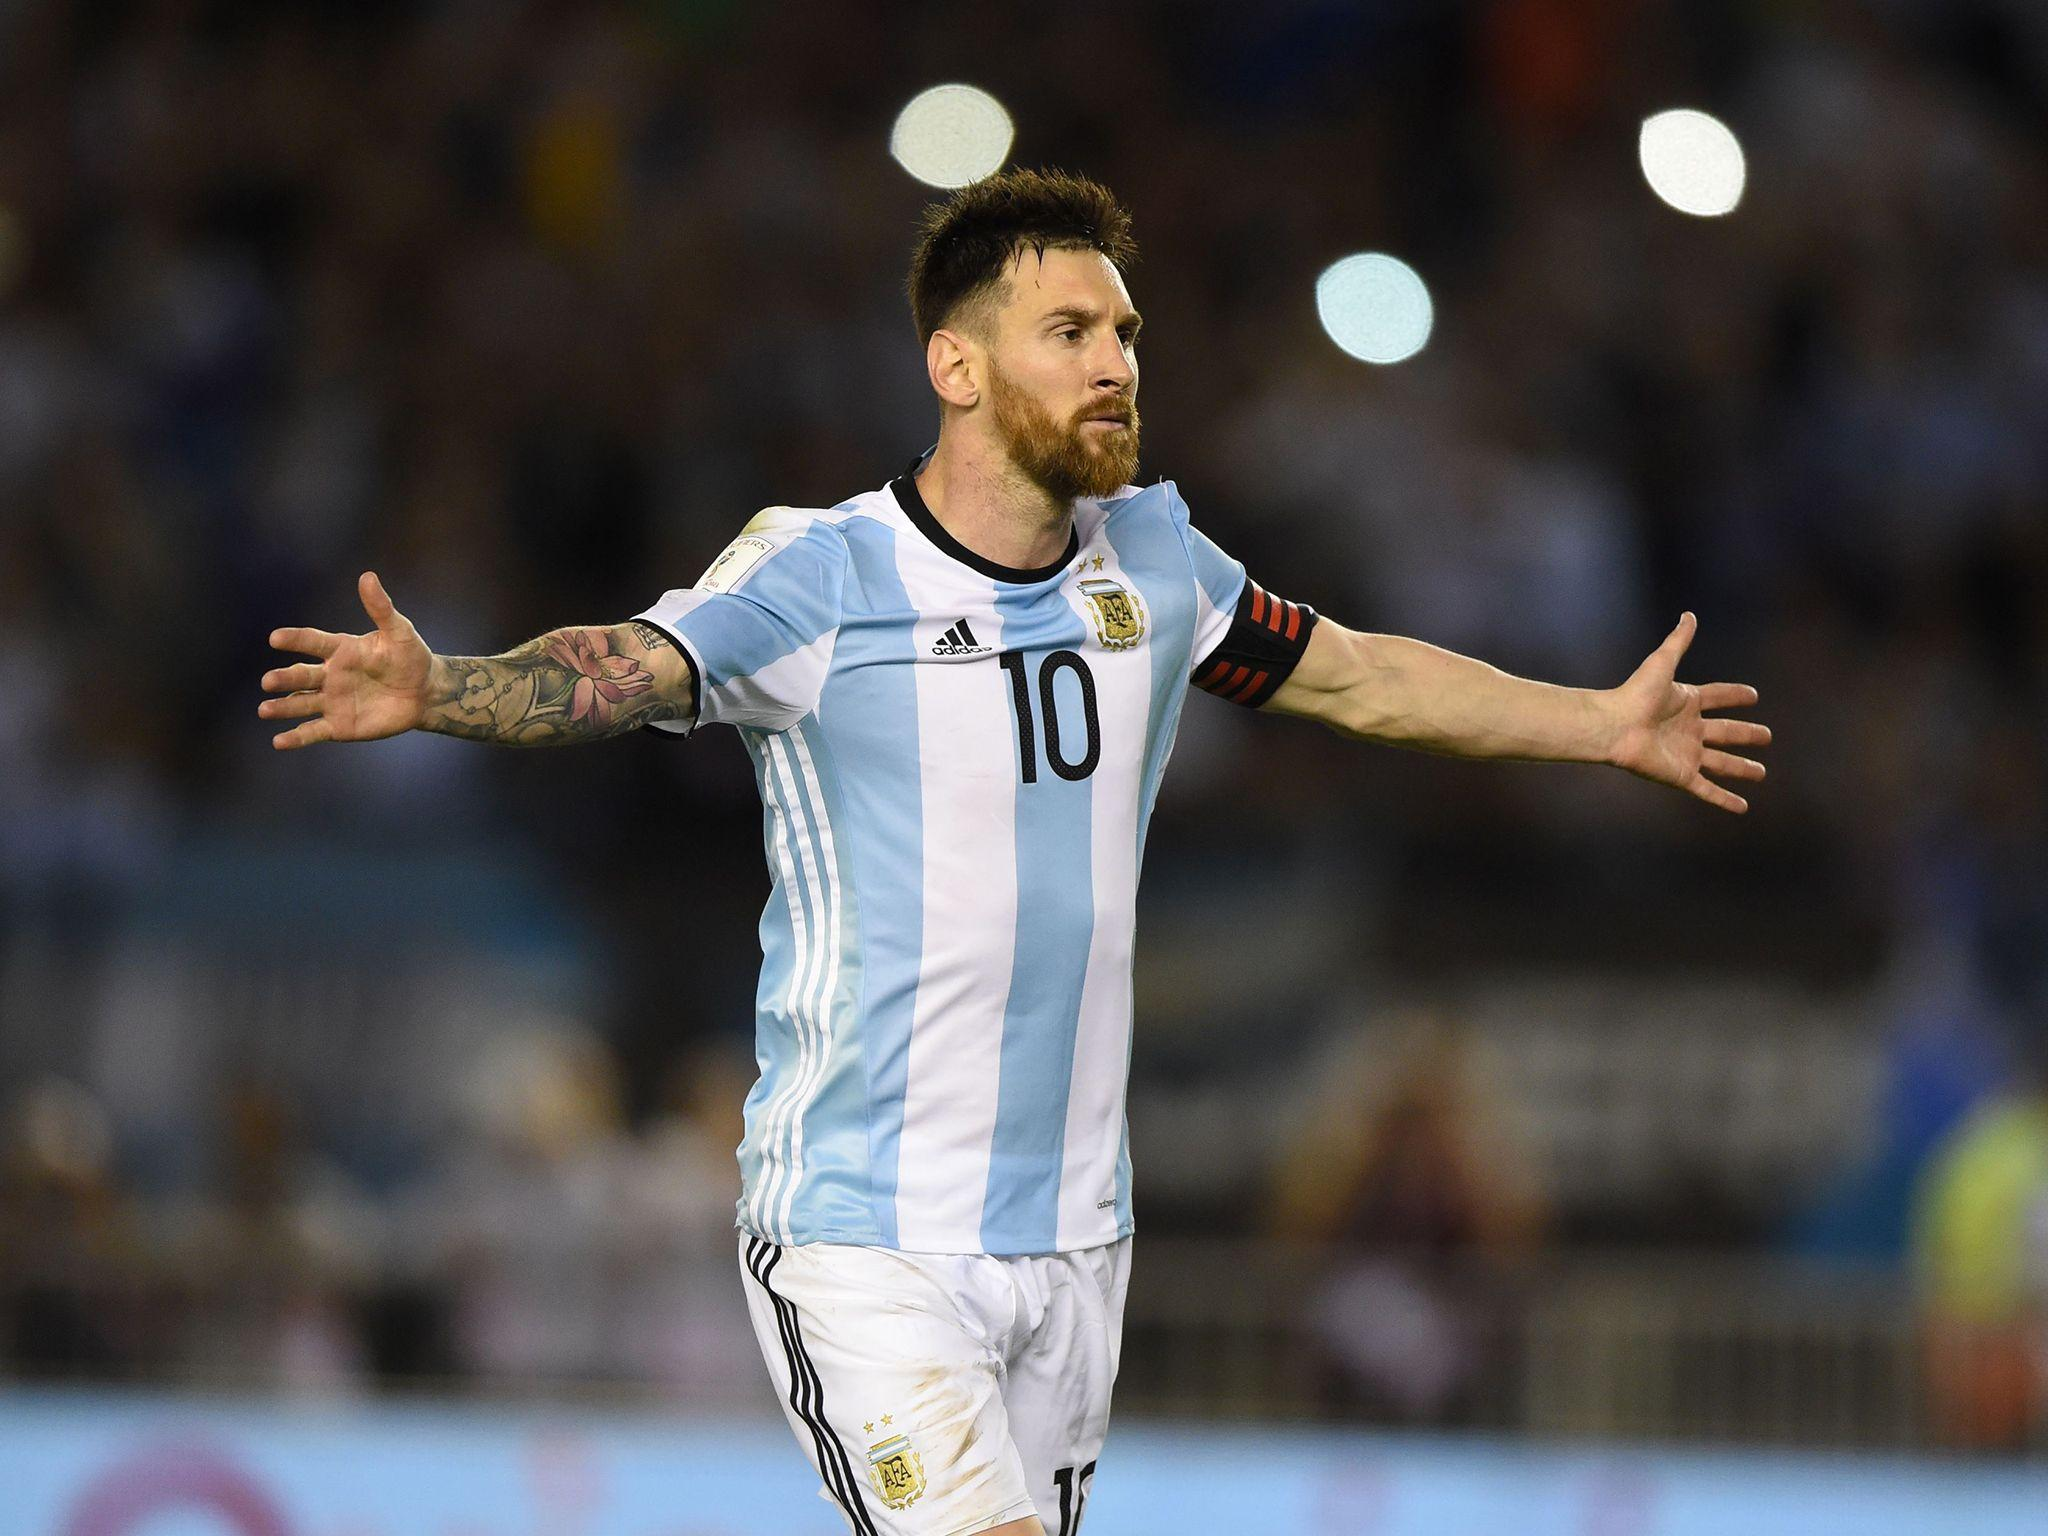 Messi Argentina Wallpaper Backgrounds HD